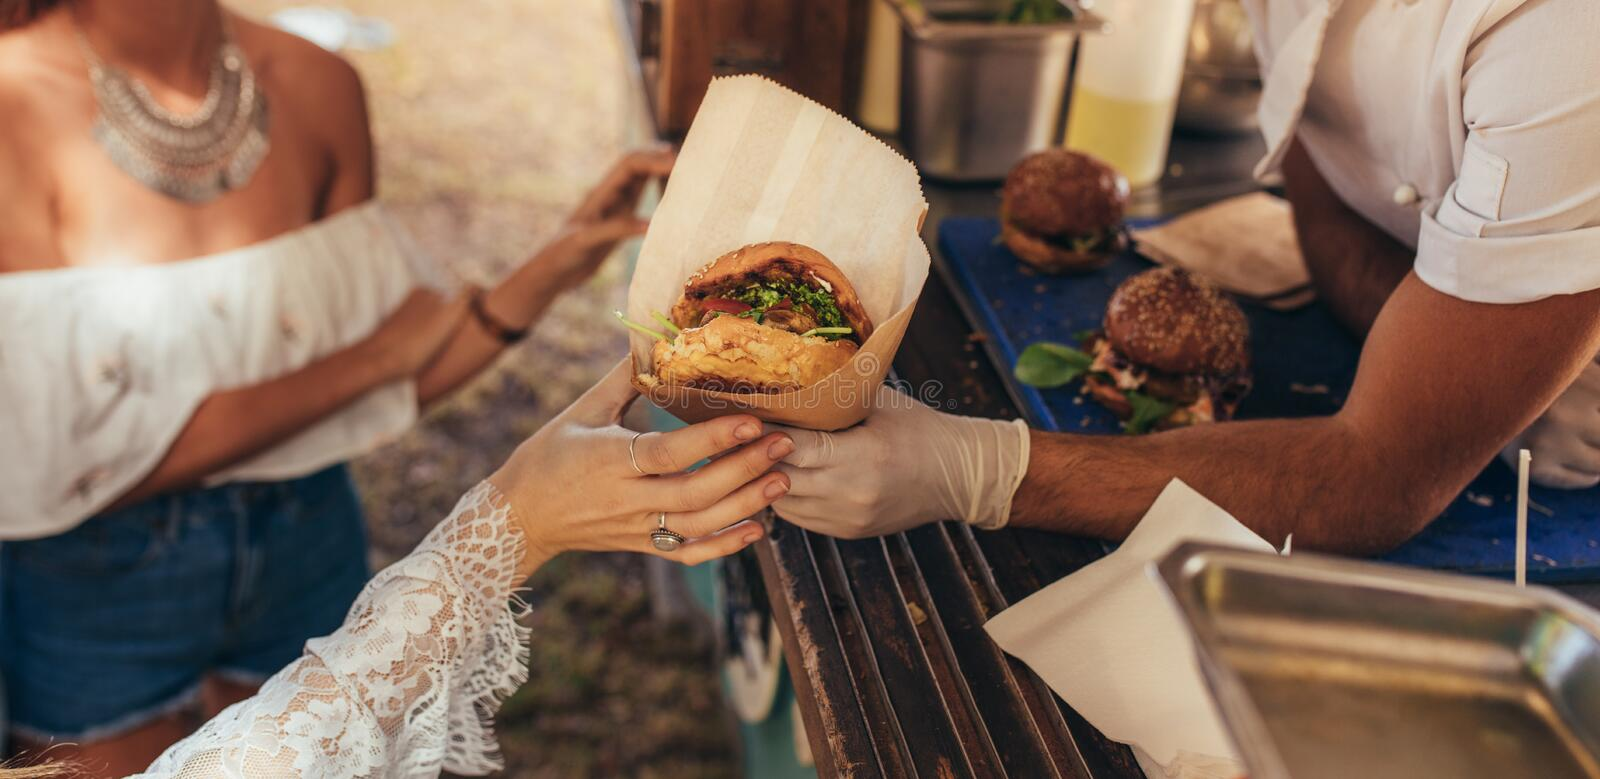 Food truck burger. Woman hand reaching for a burger at food truck. Closeup of food truck salesman serving burger to female customer stock image